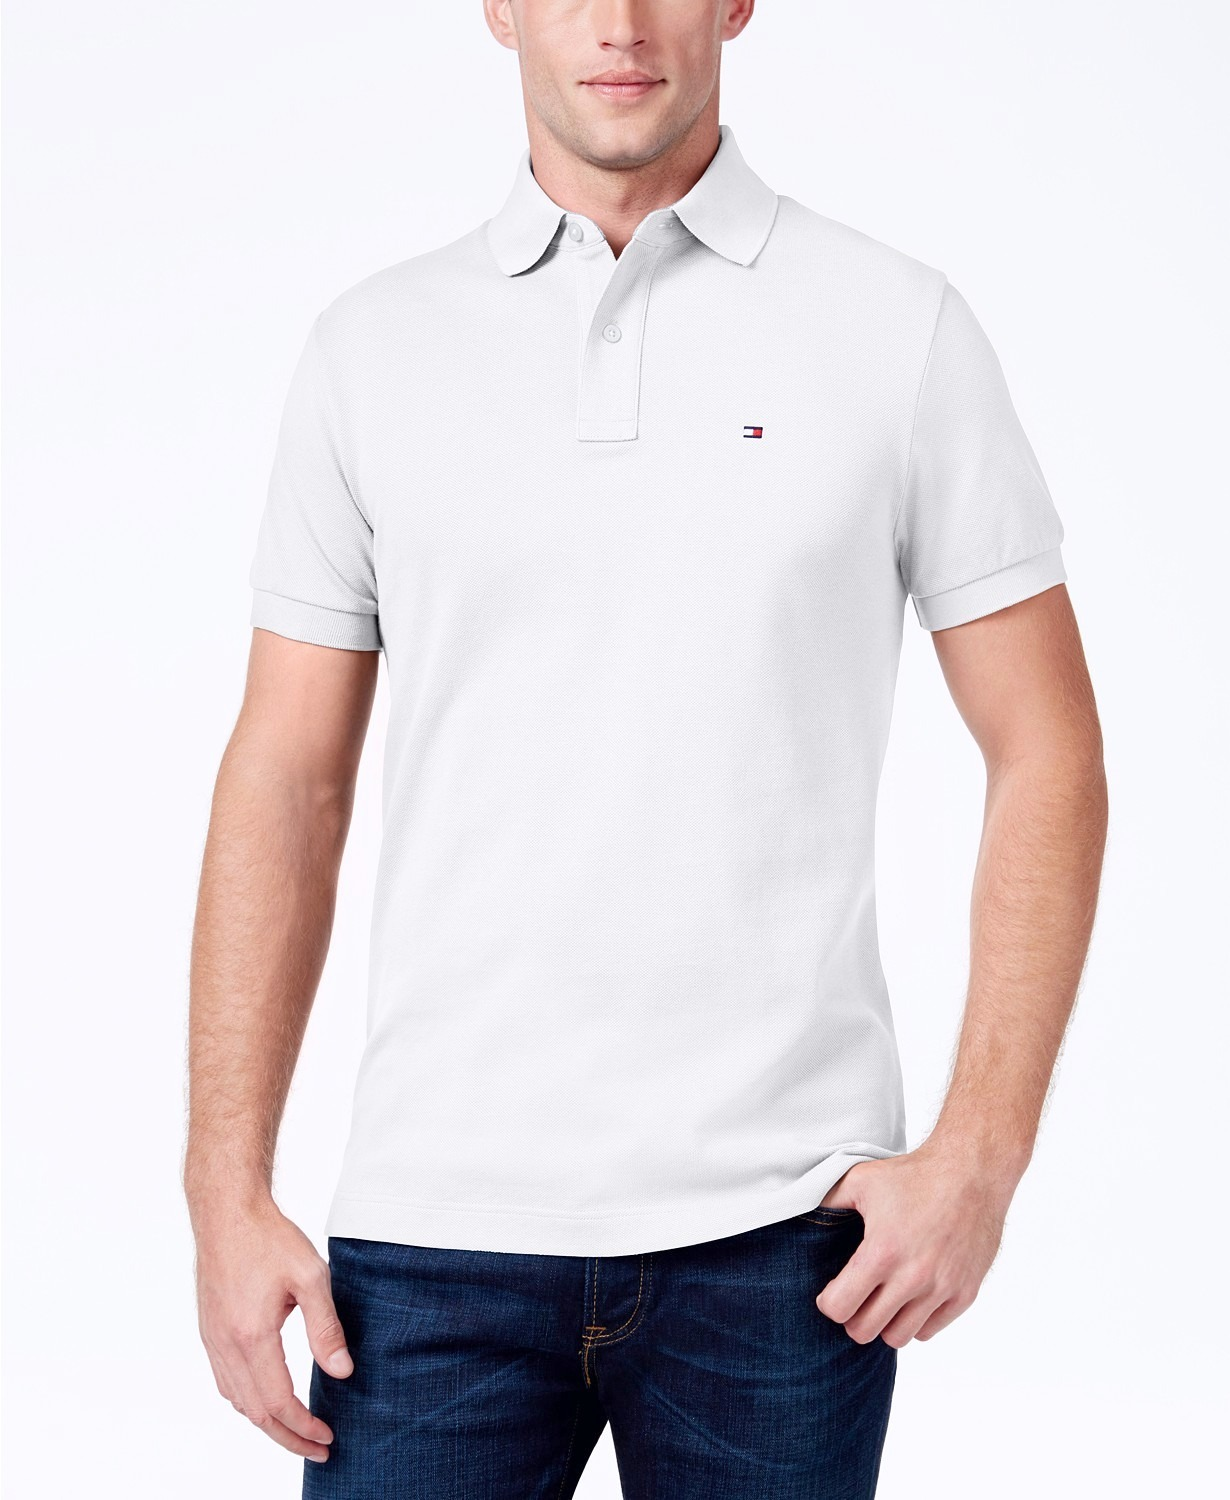 Tommy Hilfiger New Custom Fit Mens Solid Short Sleeve Pique Polo